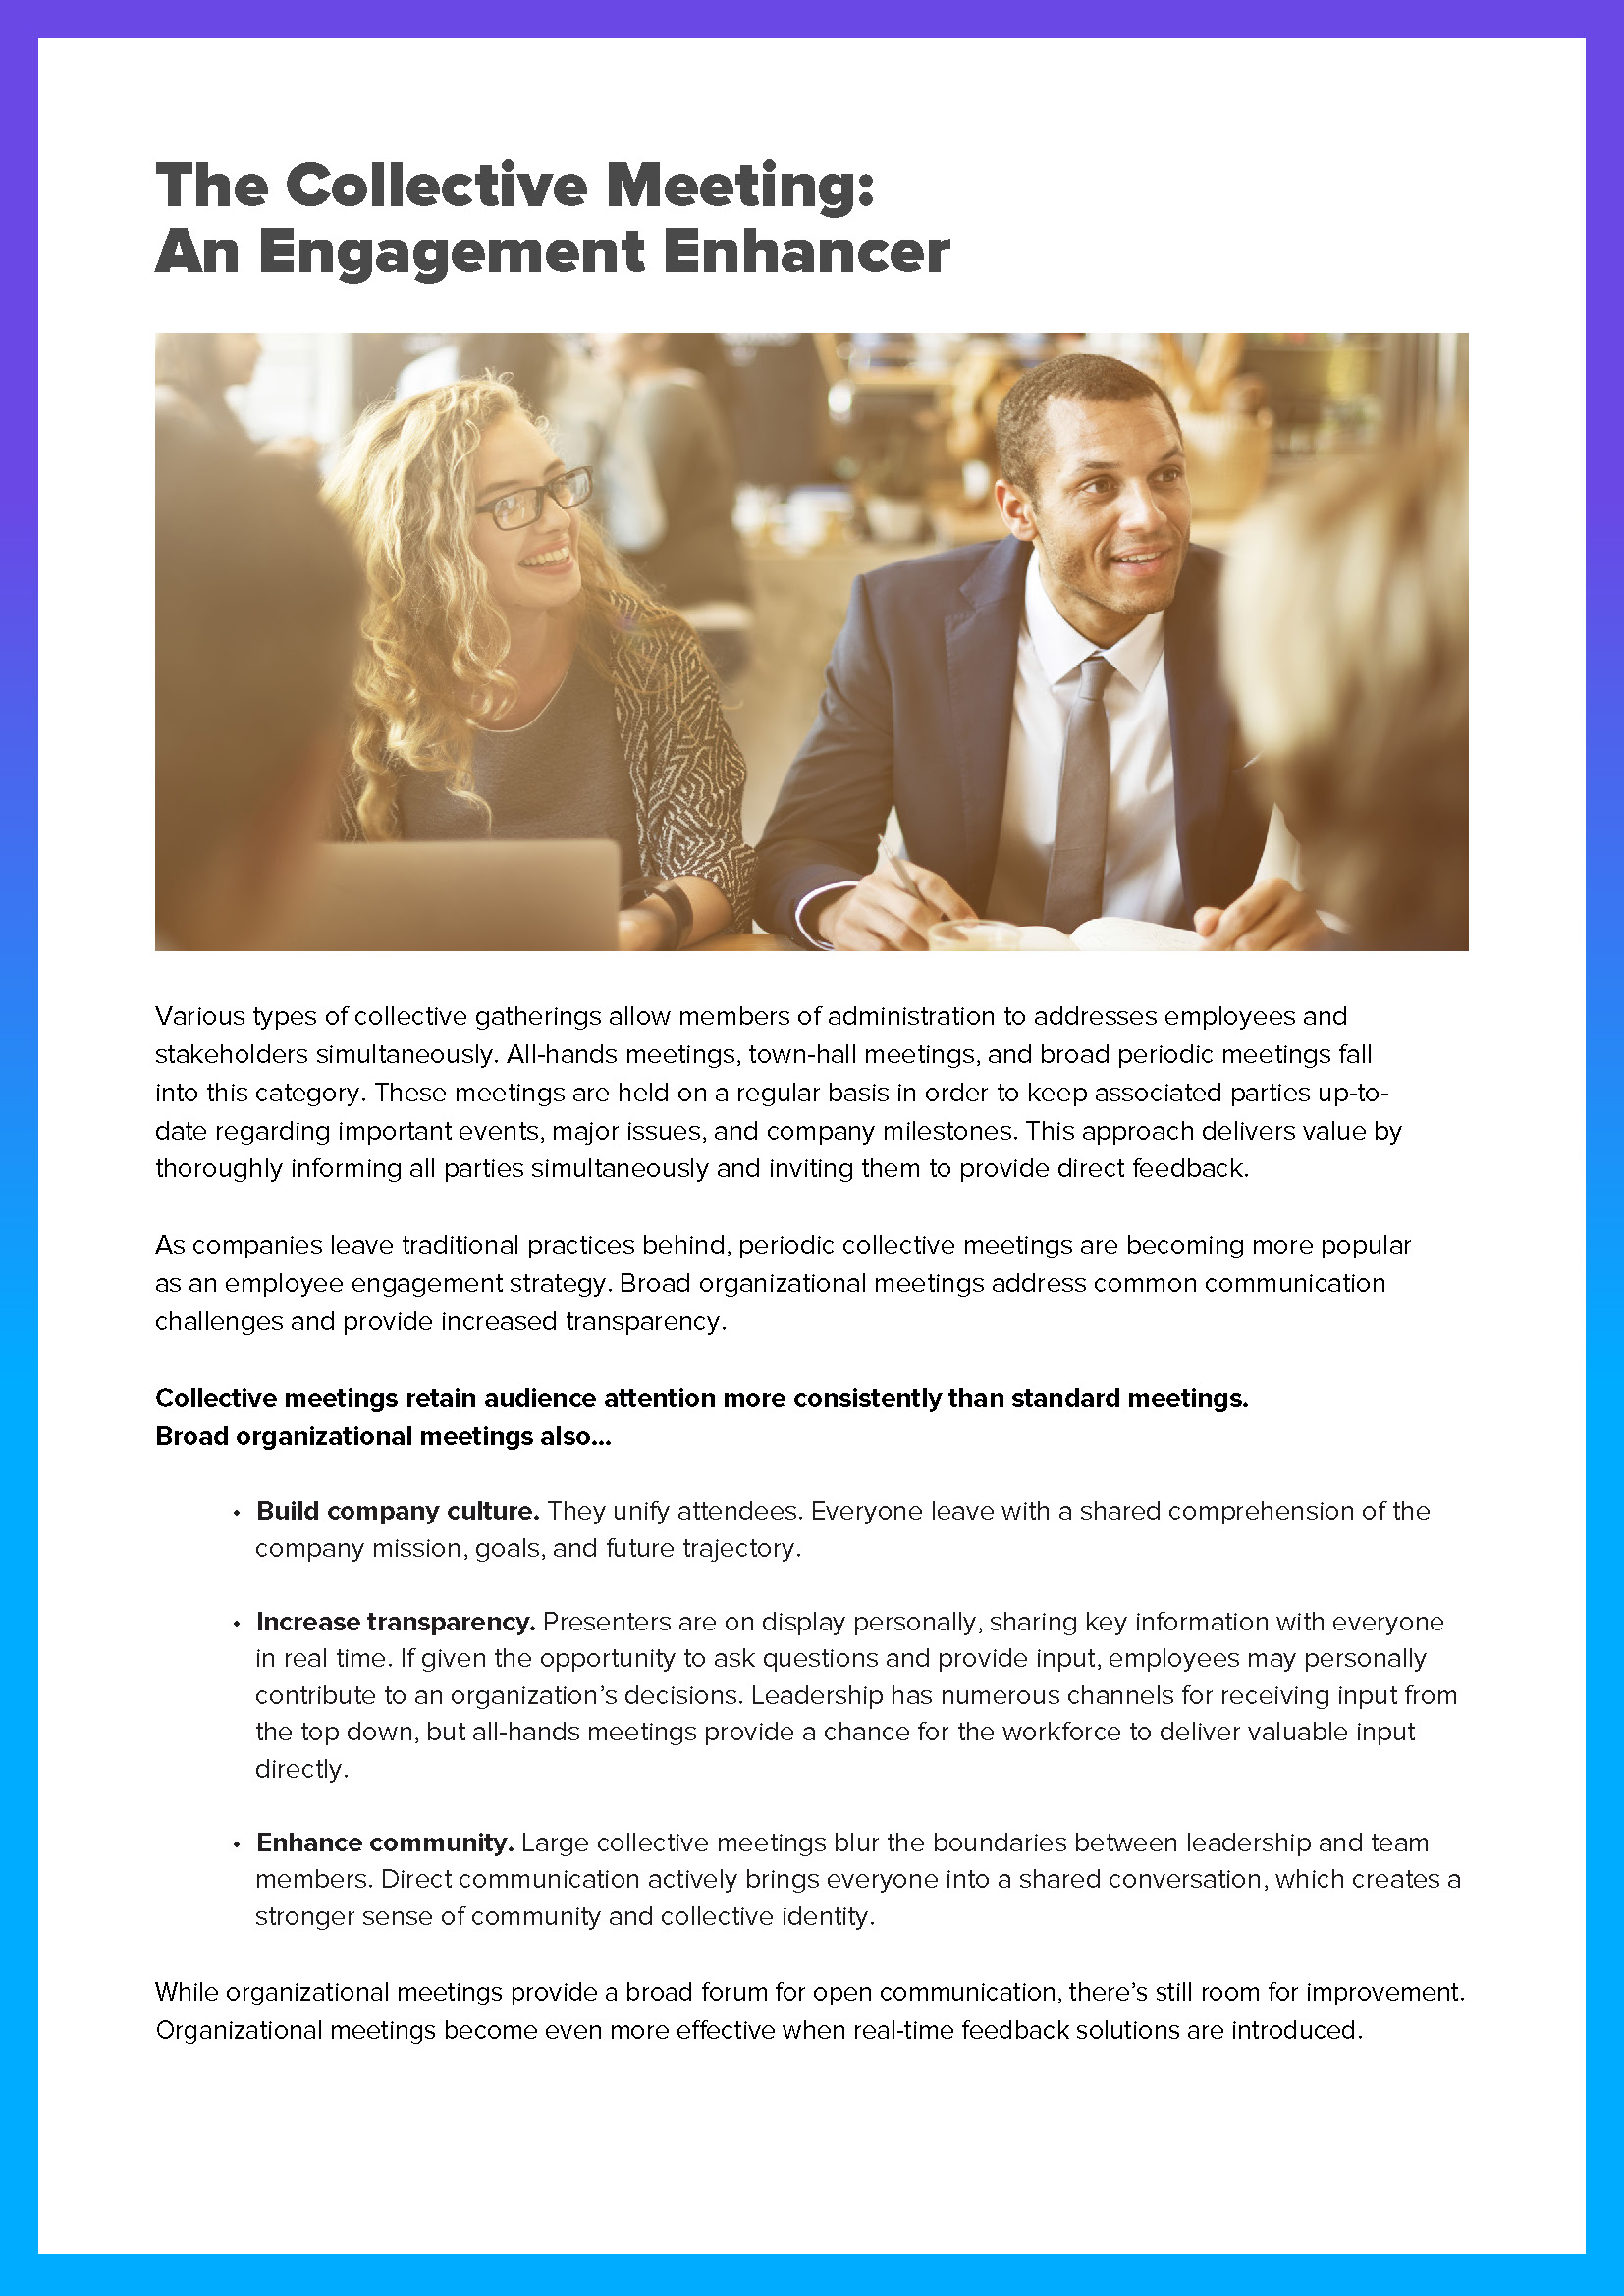 Enhancing Employee Engagement with Interactive Meeting Software_Page_04.jpg